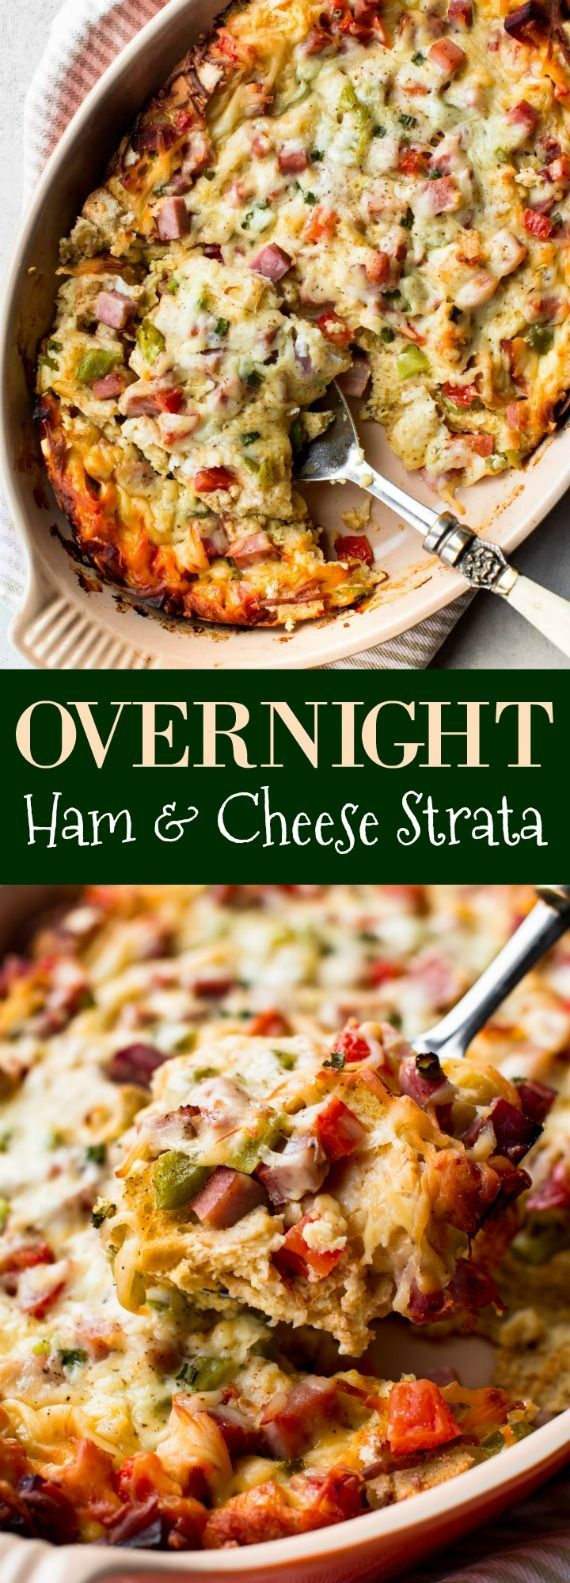 Overnight Egg & Cheese Strata Recipe — Dishmaps